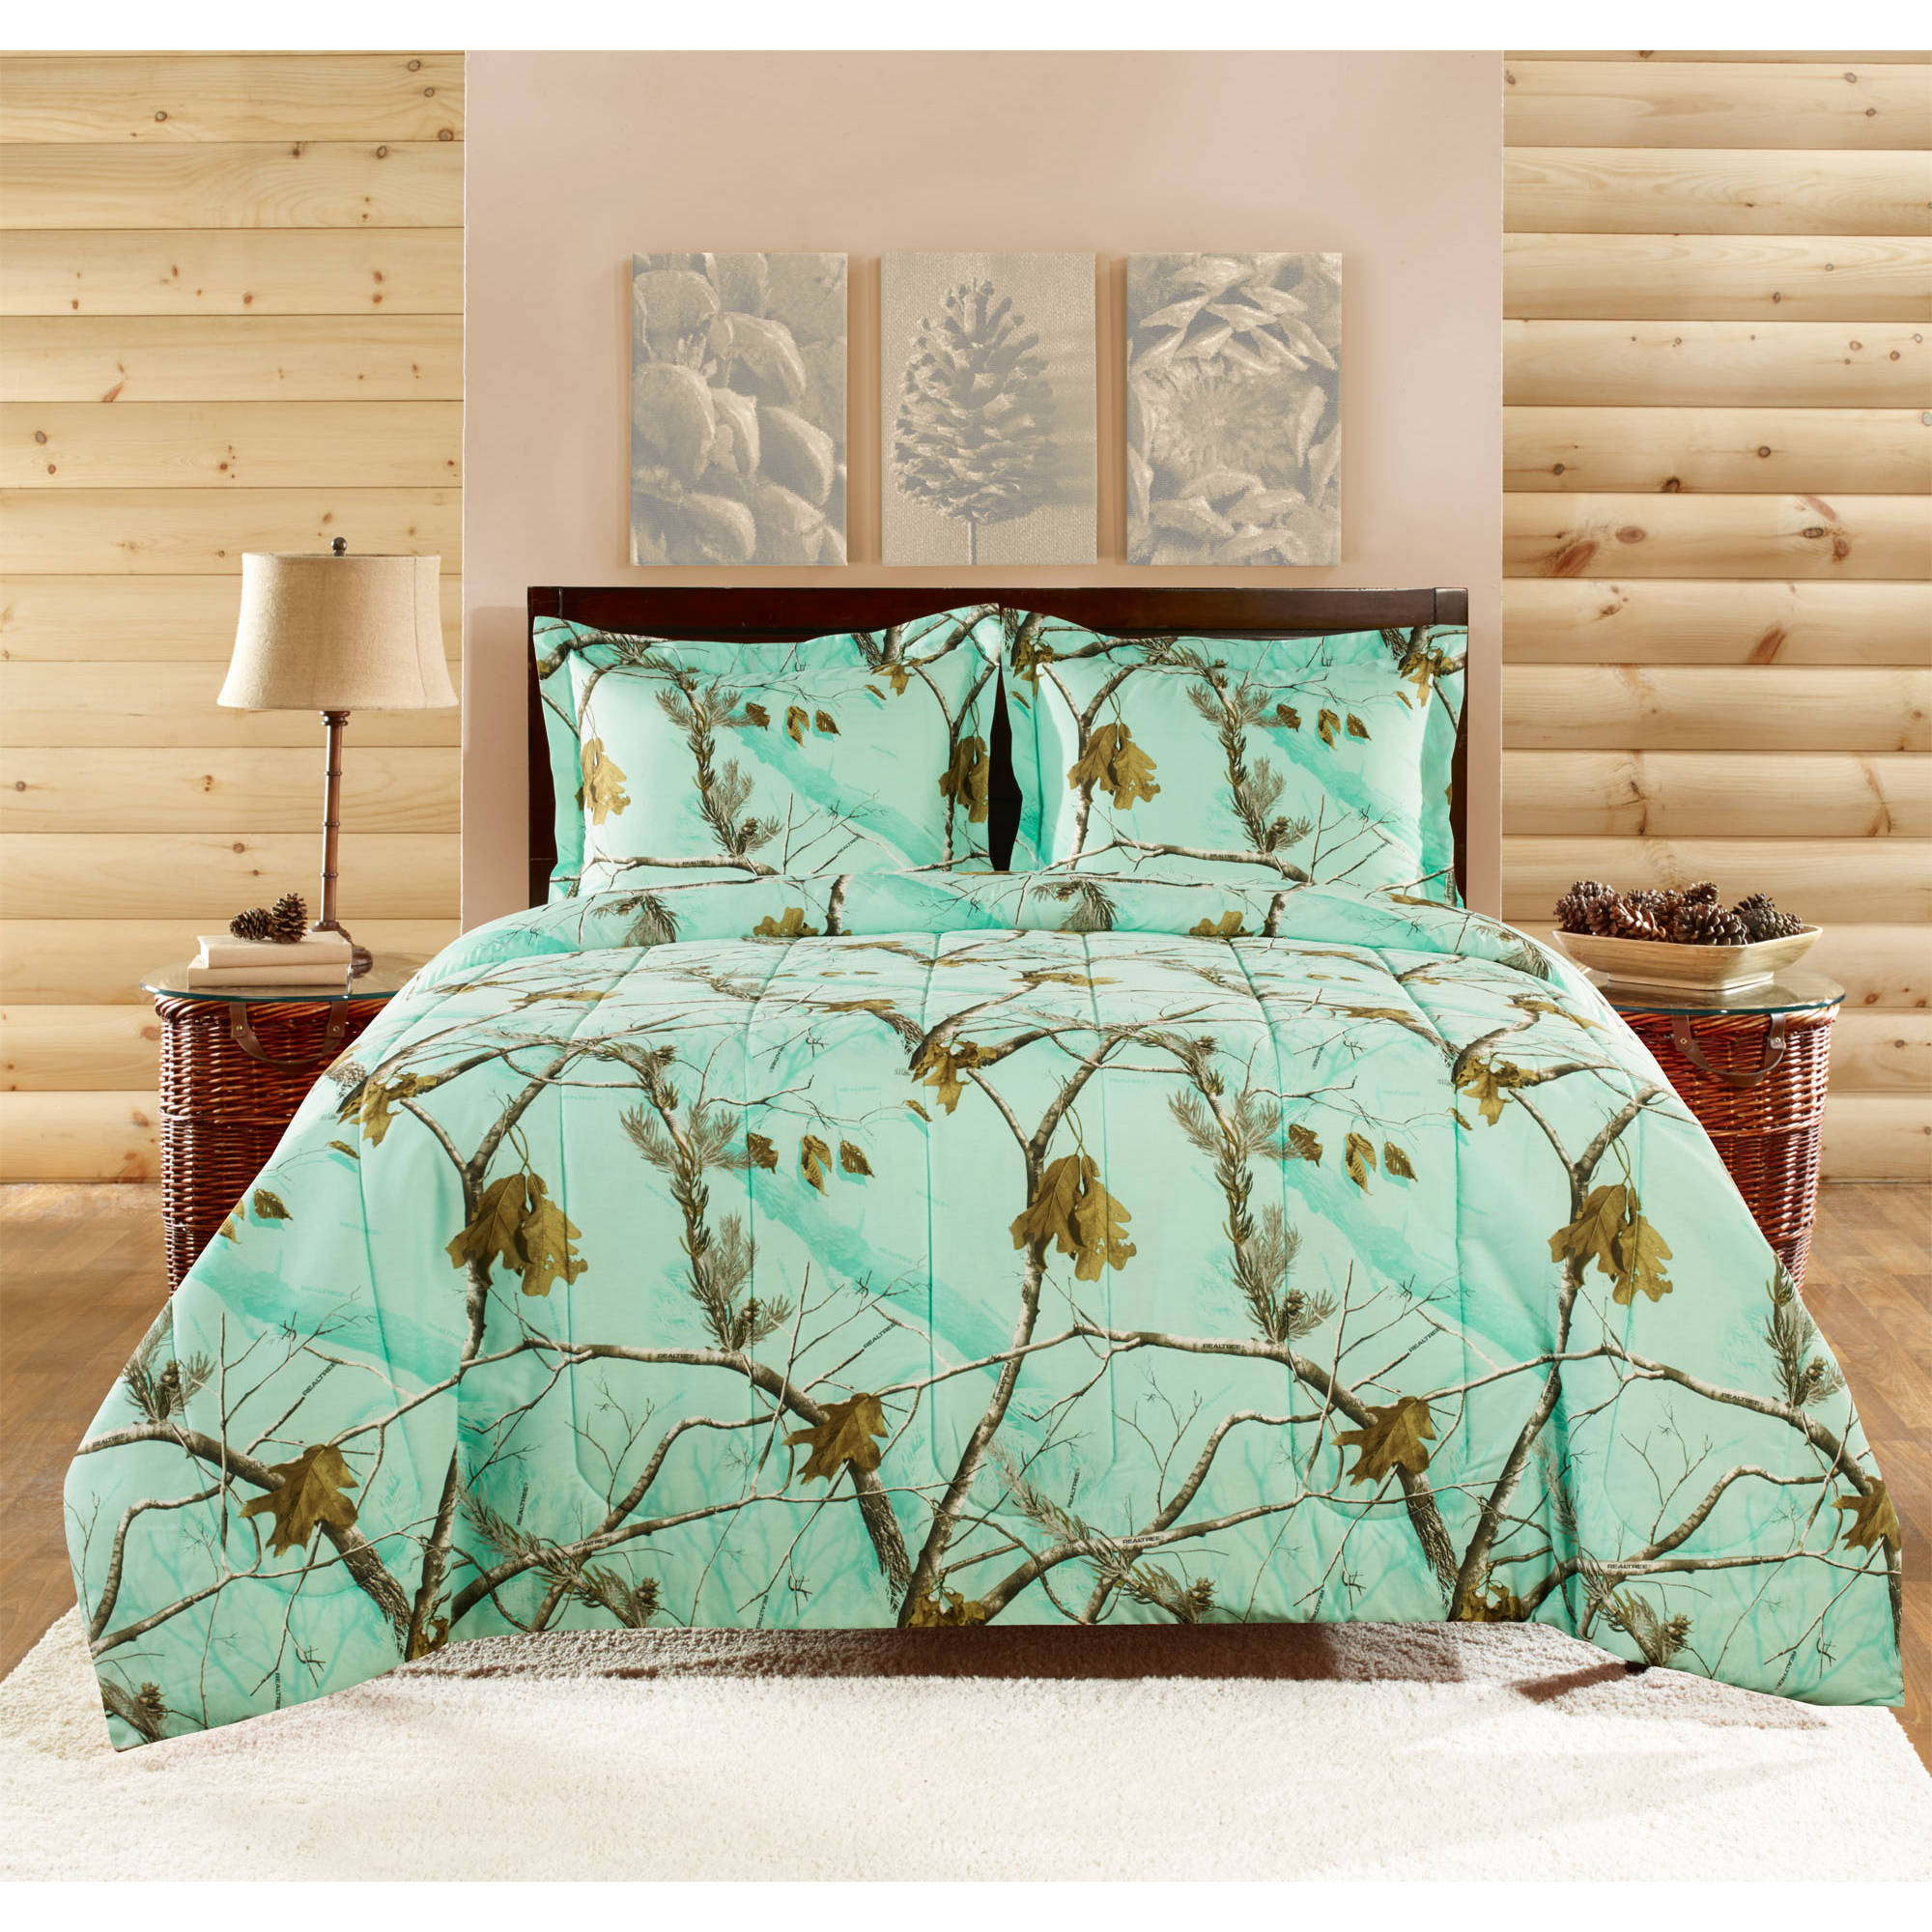 Realtree Brights Bedding forter Set Walmart